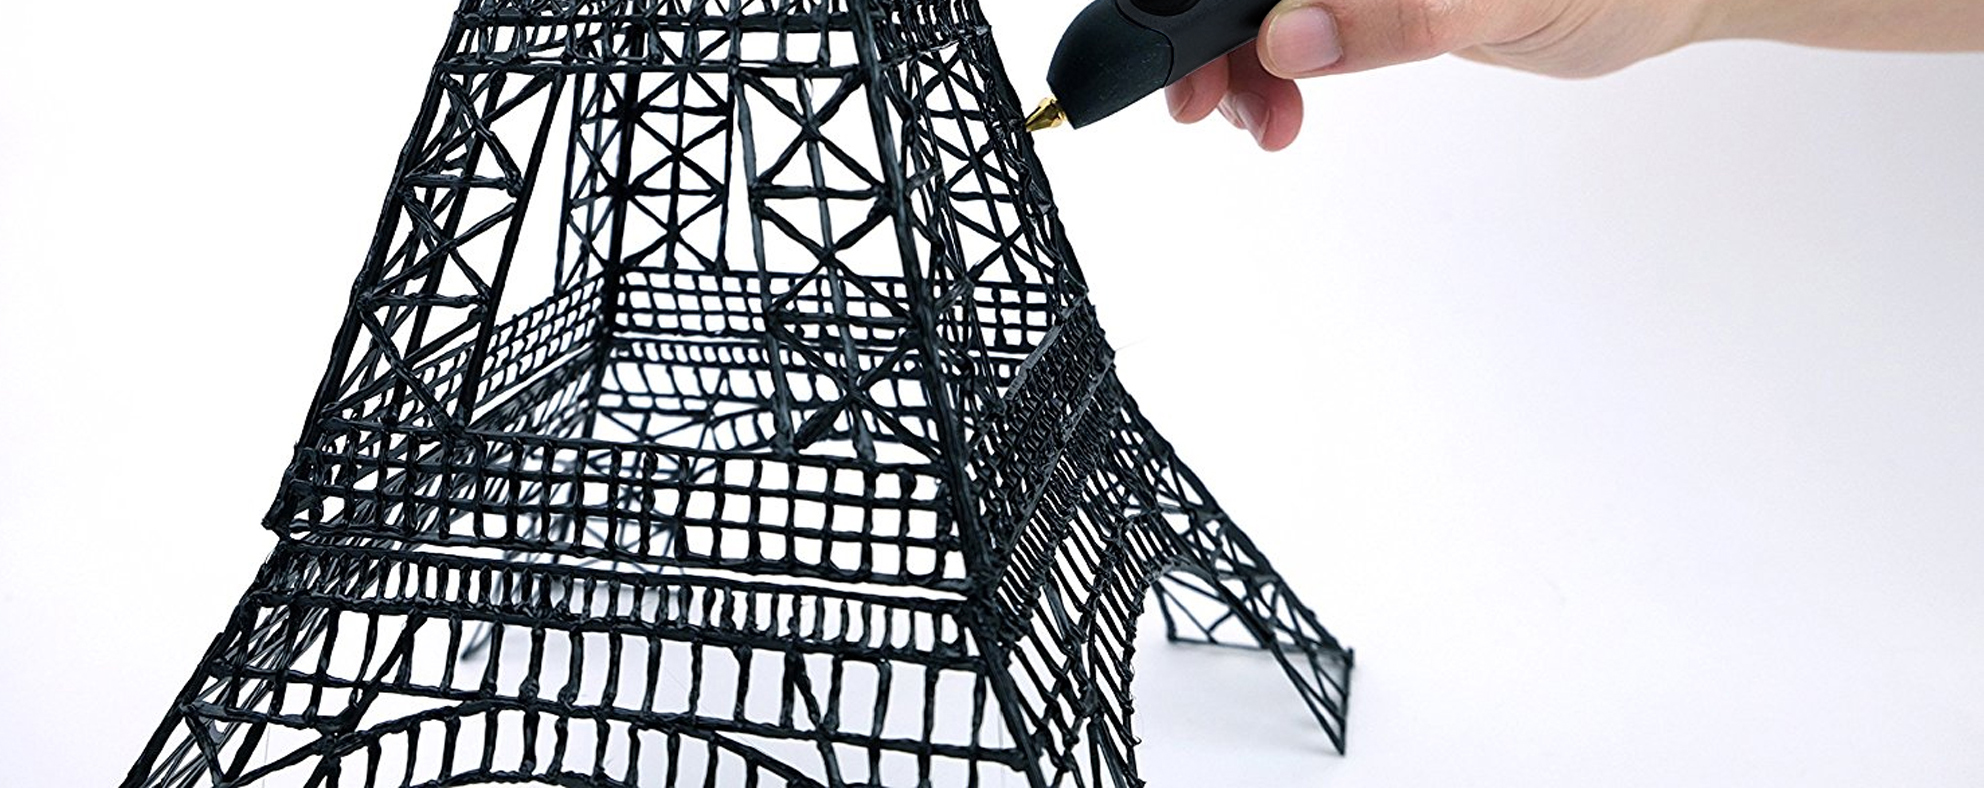 3Style 3D Printing Pen Eiffel Tower Print Sample